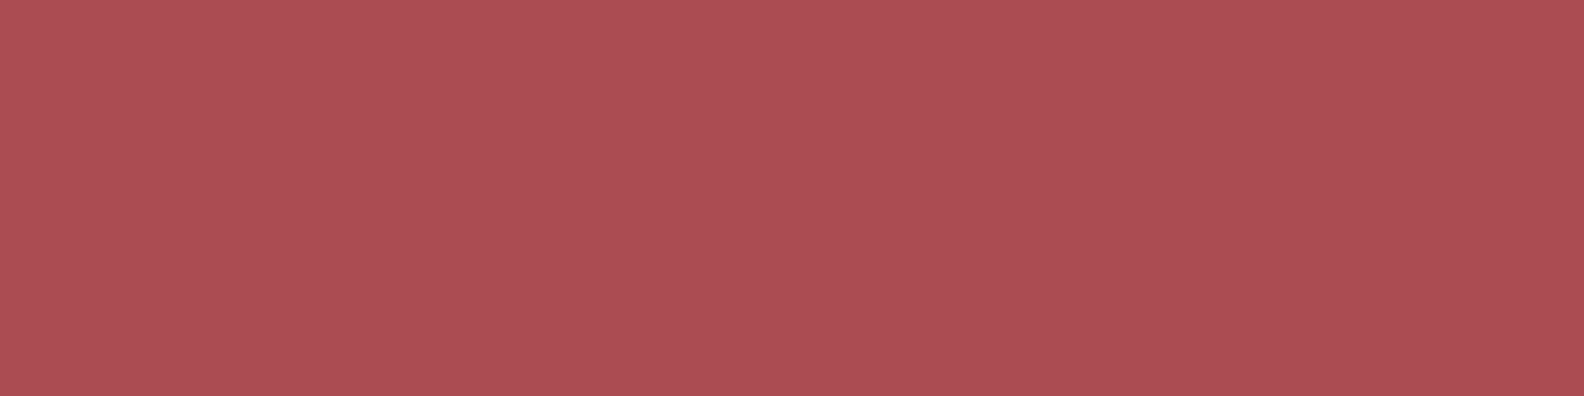 1584x396 English Red Solid Color Background